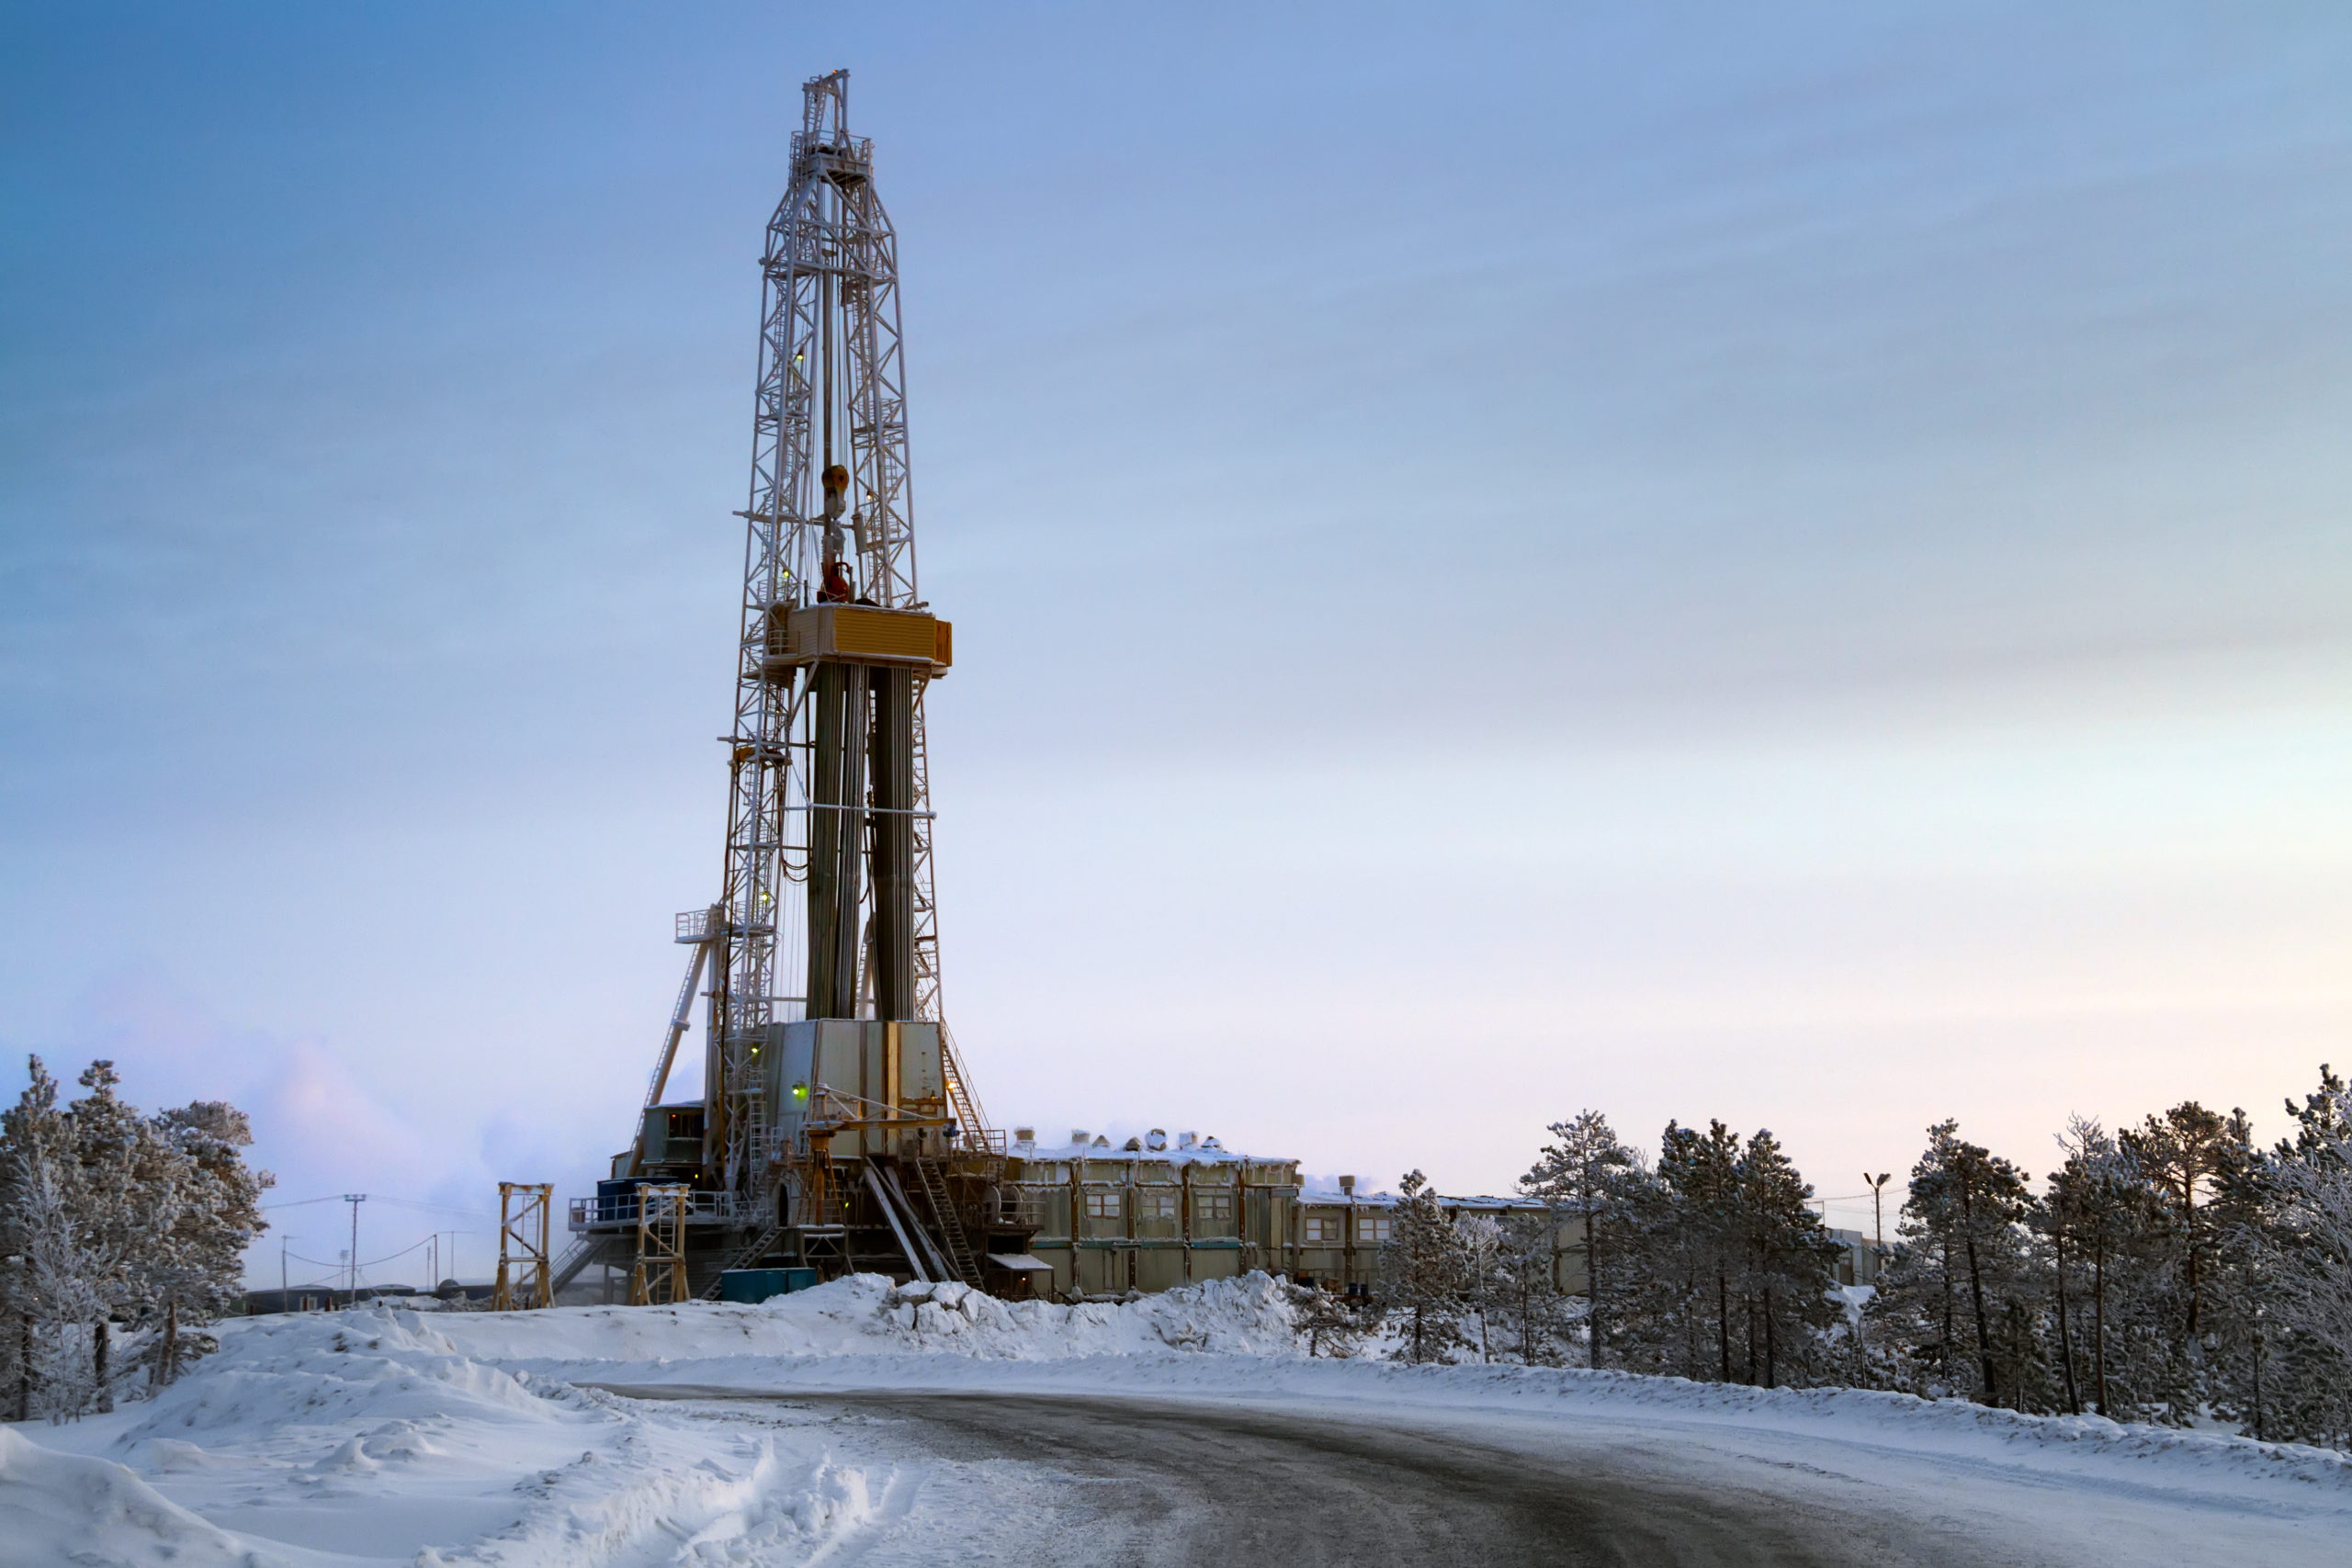 The Pros and Cons of Fracking